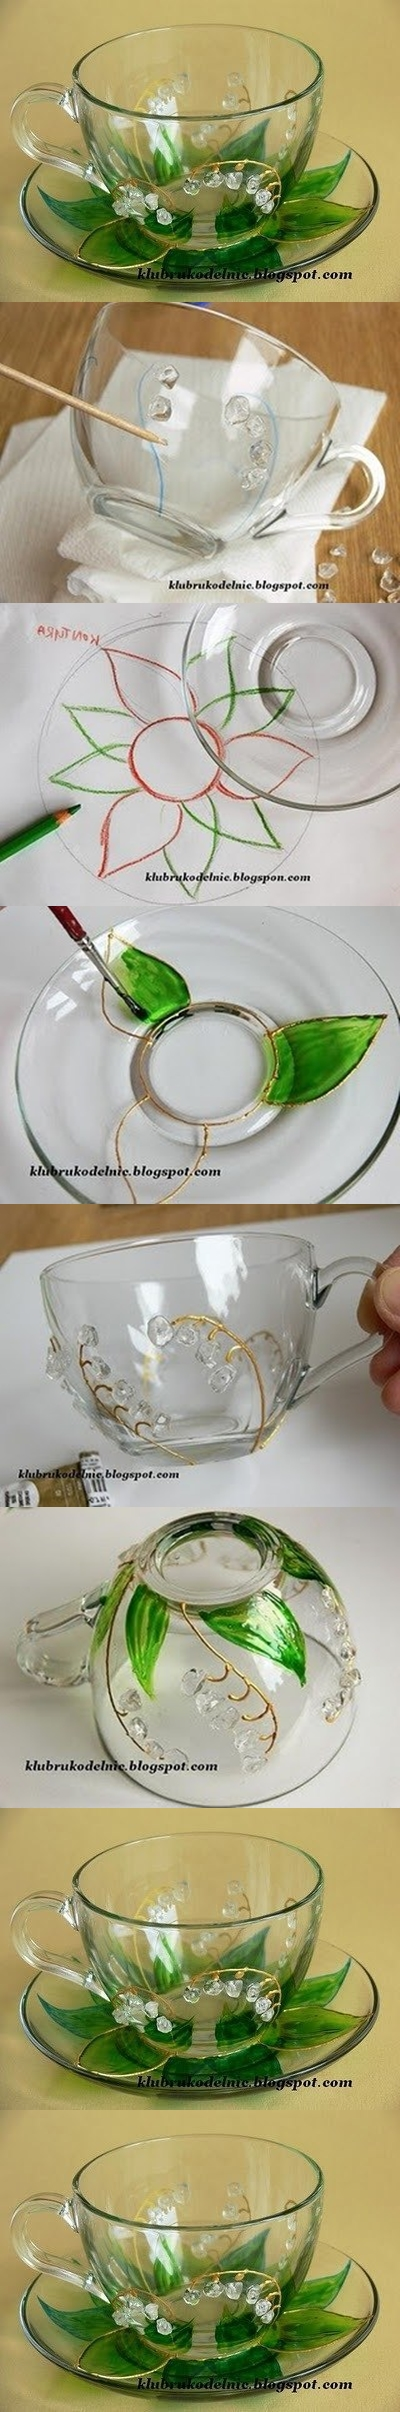 glass art tutorial